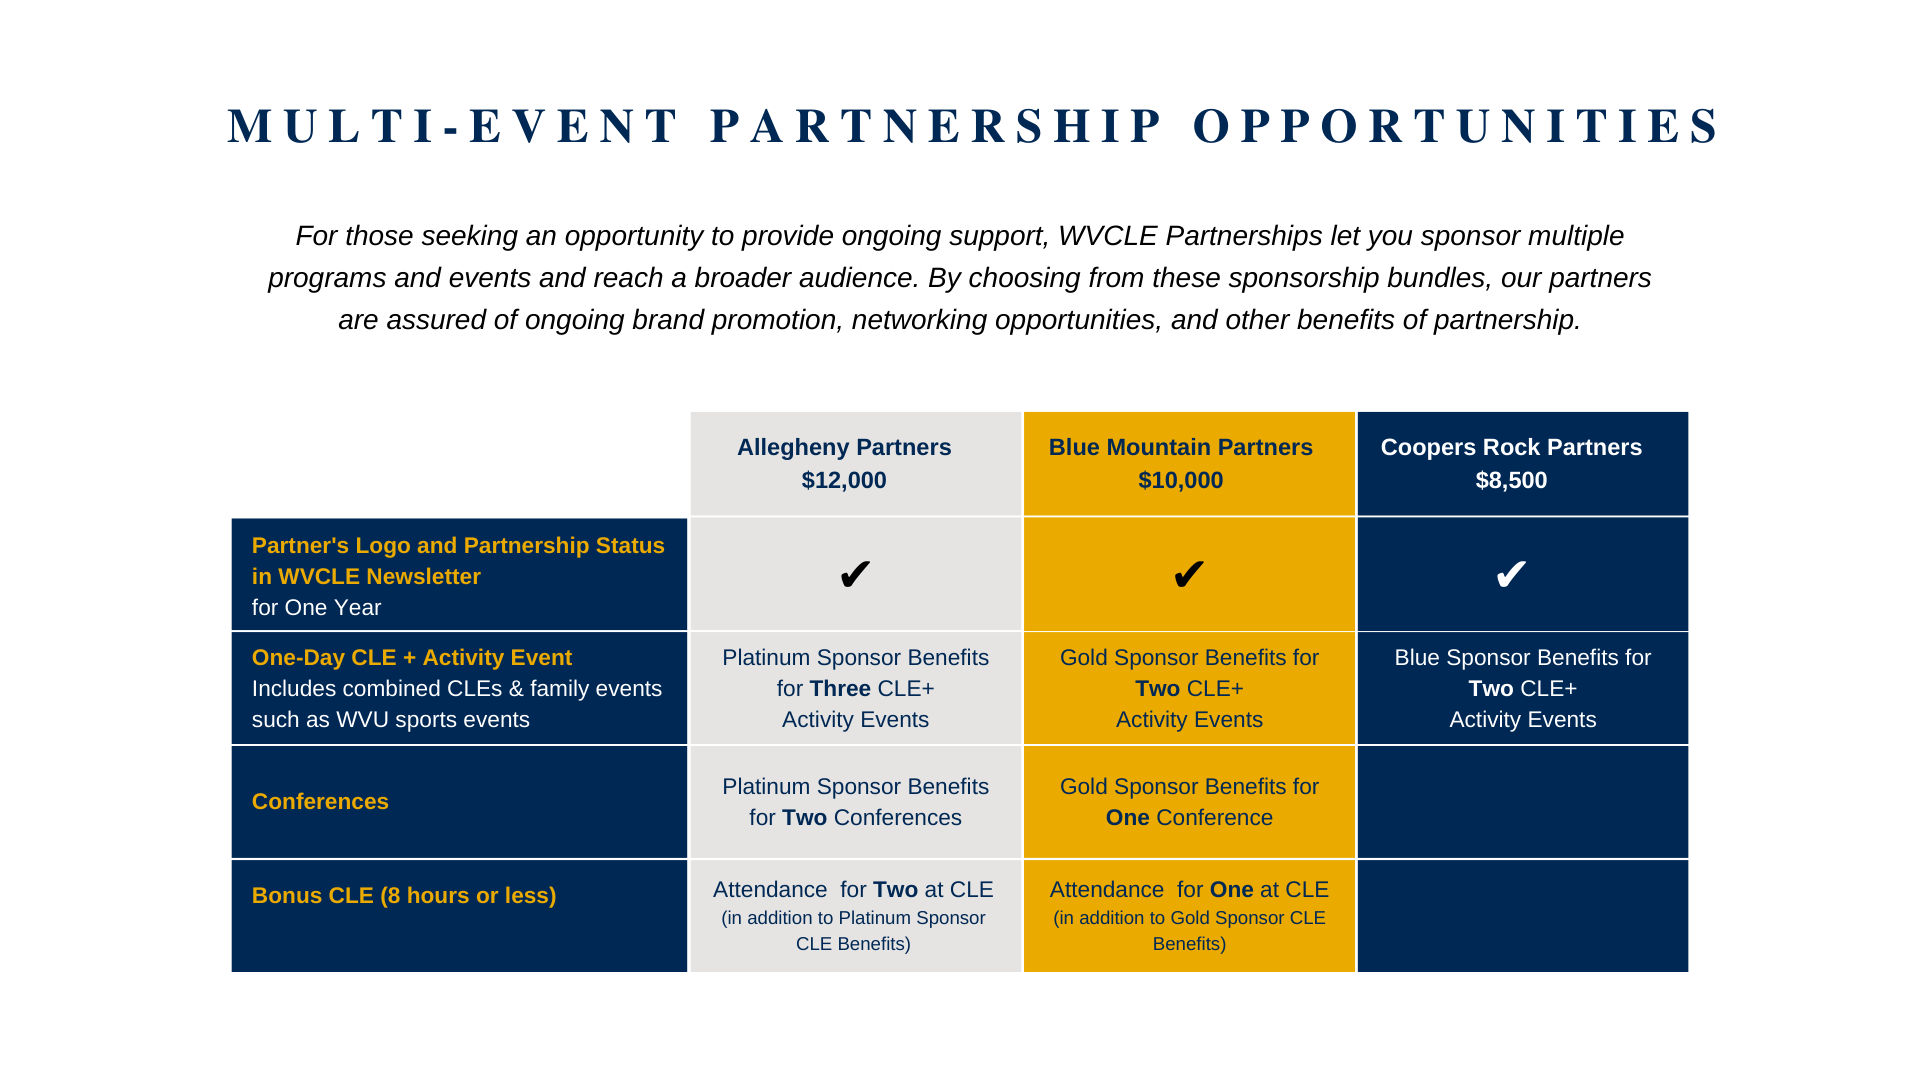 Multi-Event Partnership Opportunities chart showing the multiple sponsorship levels for a multi-event partnership.